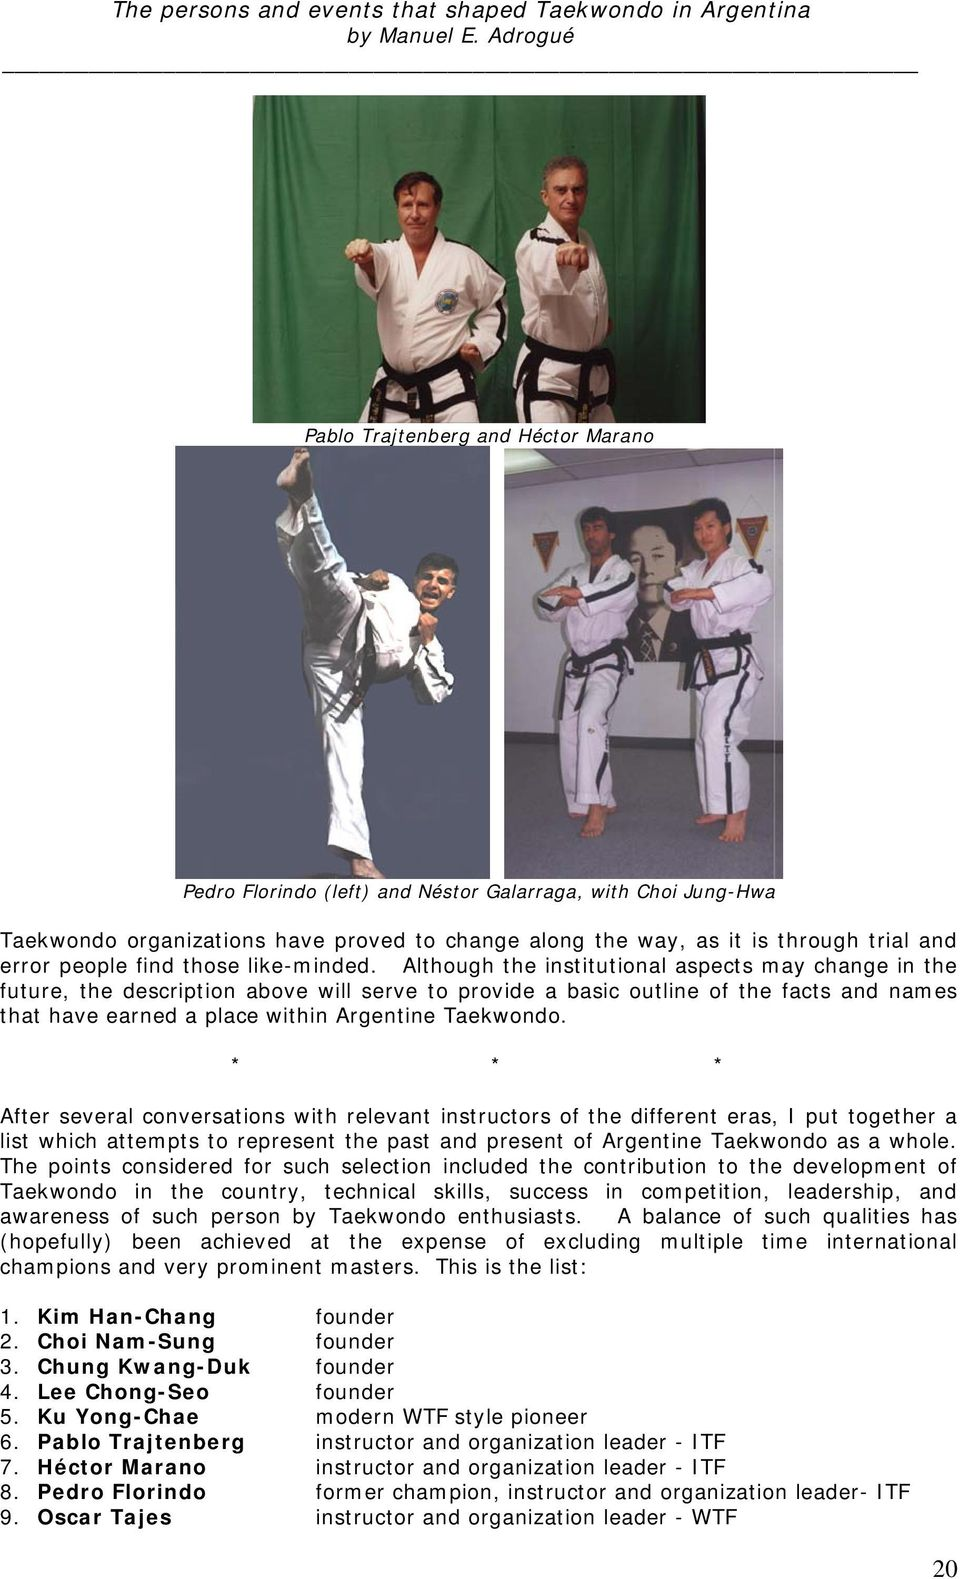 Although the institutional aspects may change in the future, the description above will serve to provide a basic outline of the facts and names that have earned a place within Argentine Taekwondo.